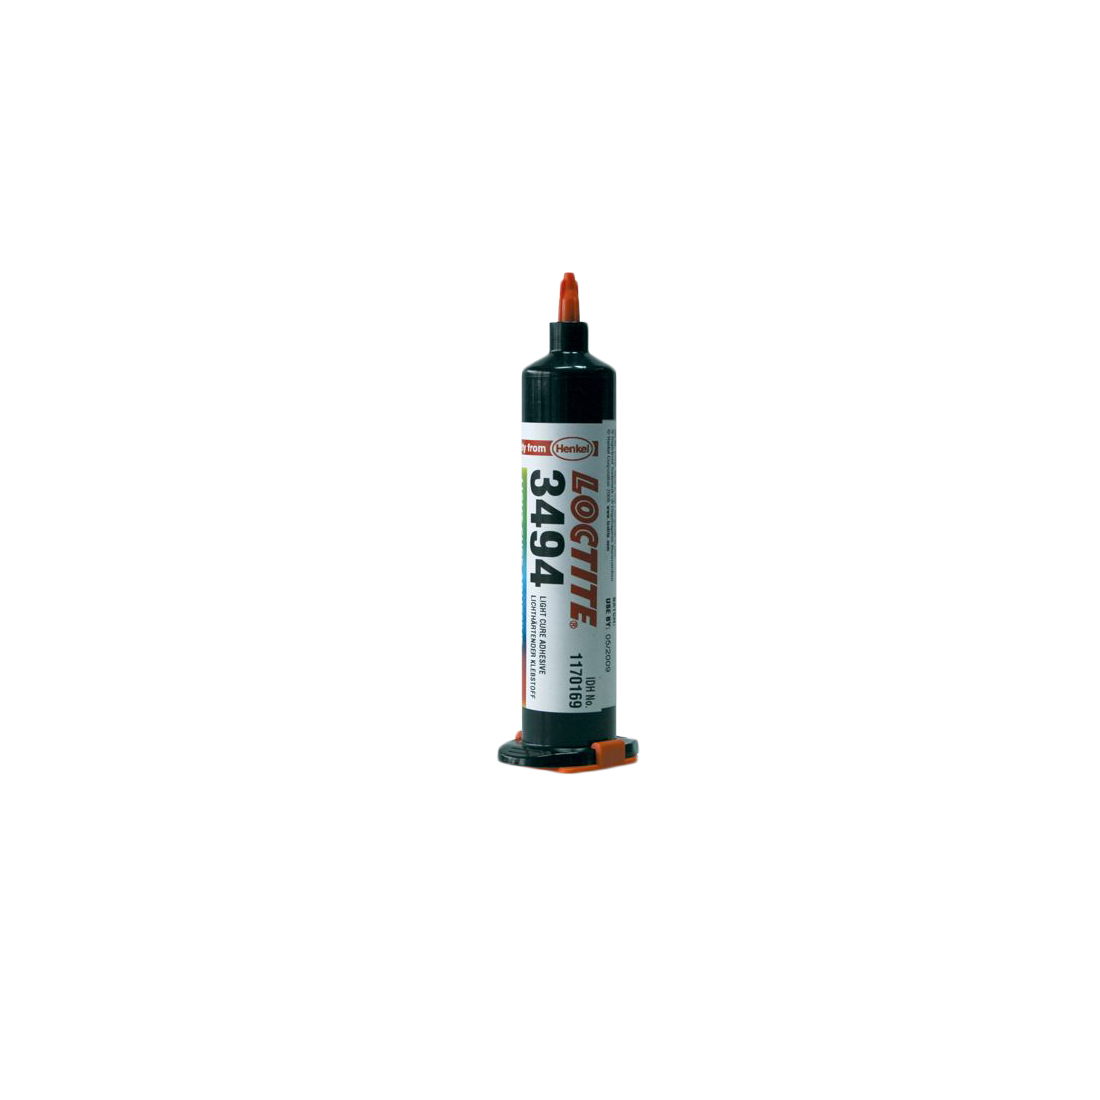 Loctite 3494 UV Glue - 25ml